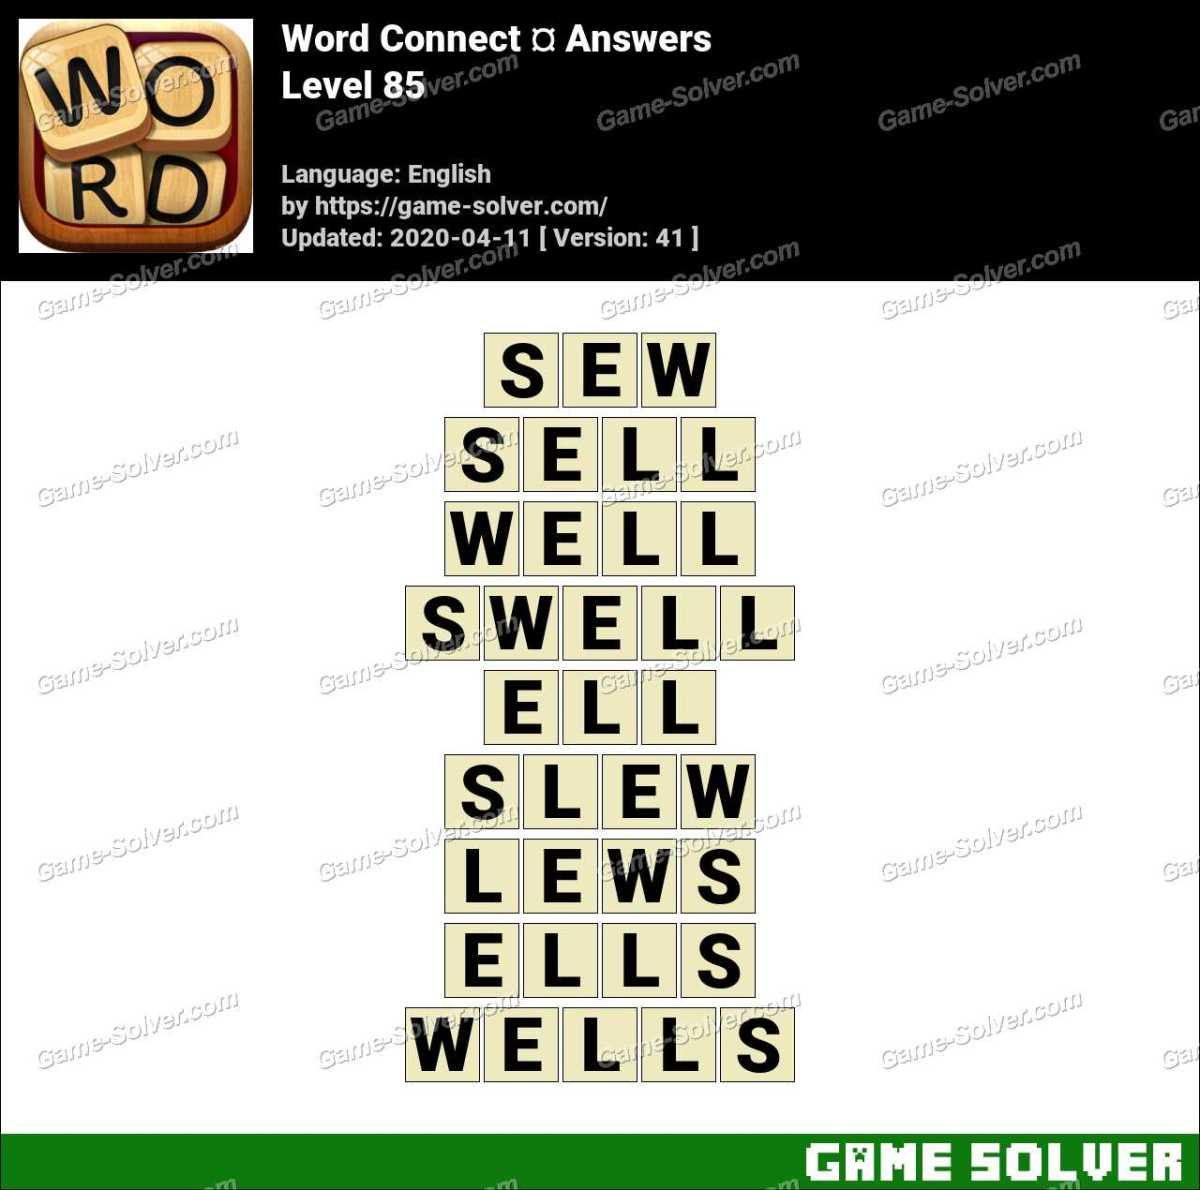 Word Connect Level 85 Answers